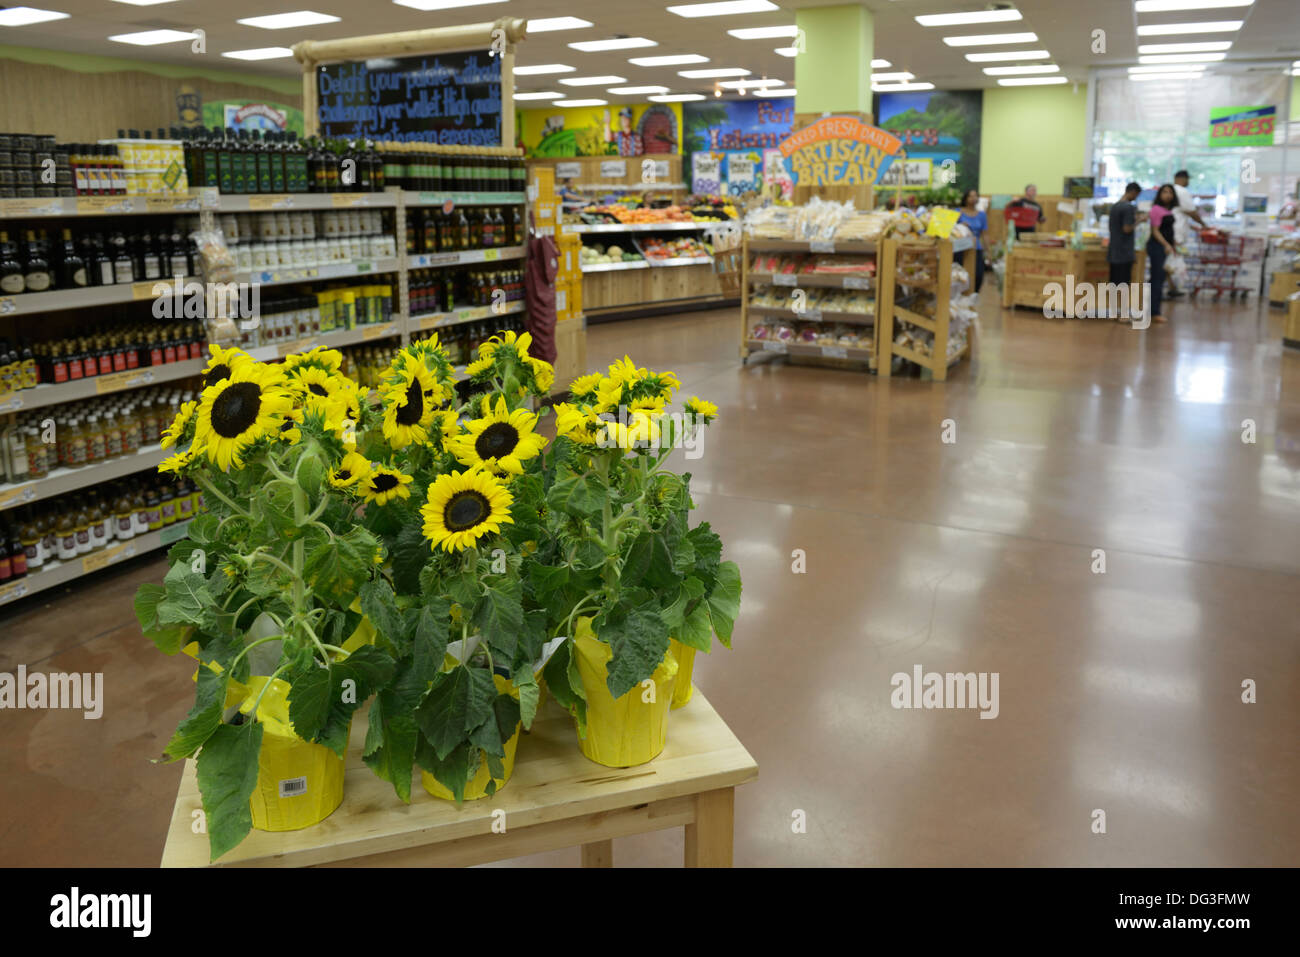 Trader Joe's supermarket - Stock Image